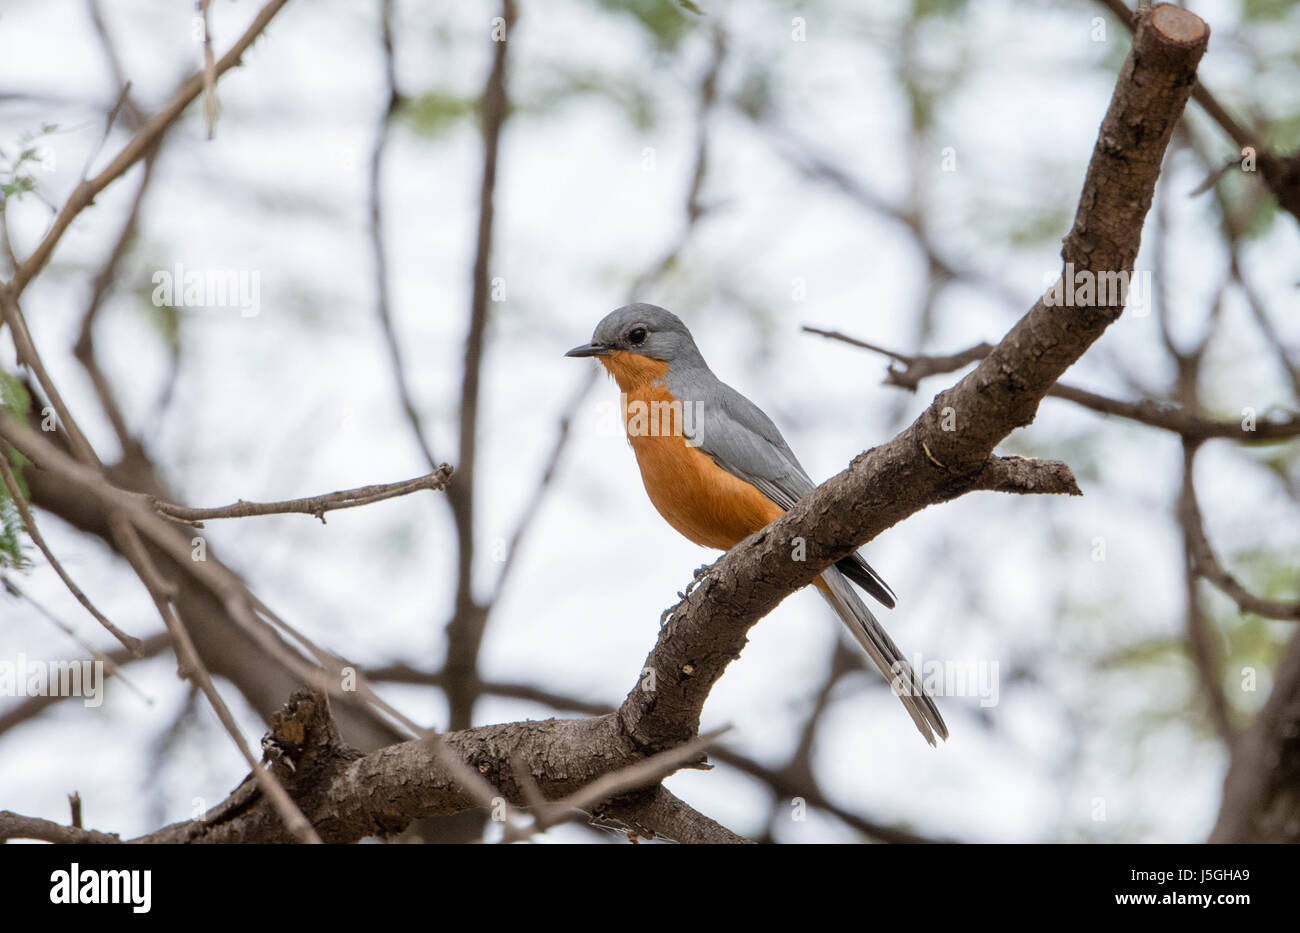 Silverbird (Melaenornis semipartitus) Perched on Branch in Northern Tanzania - Stock Image